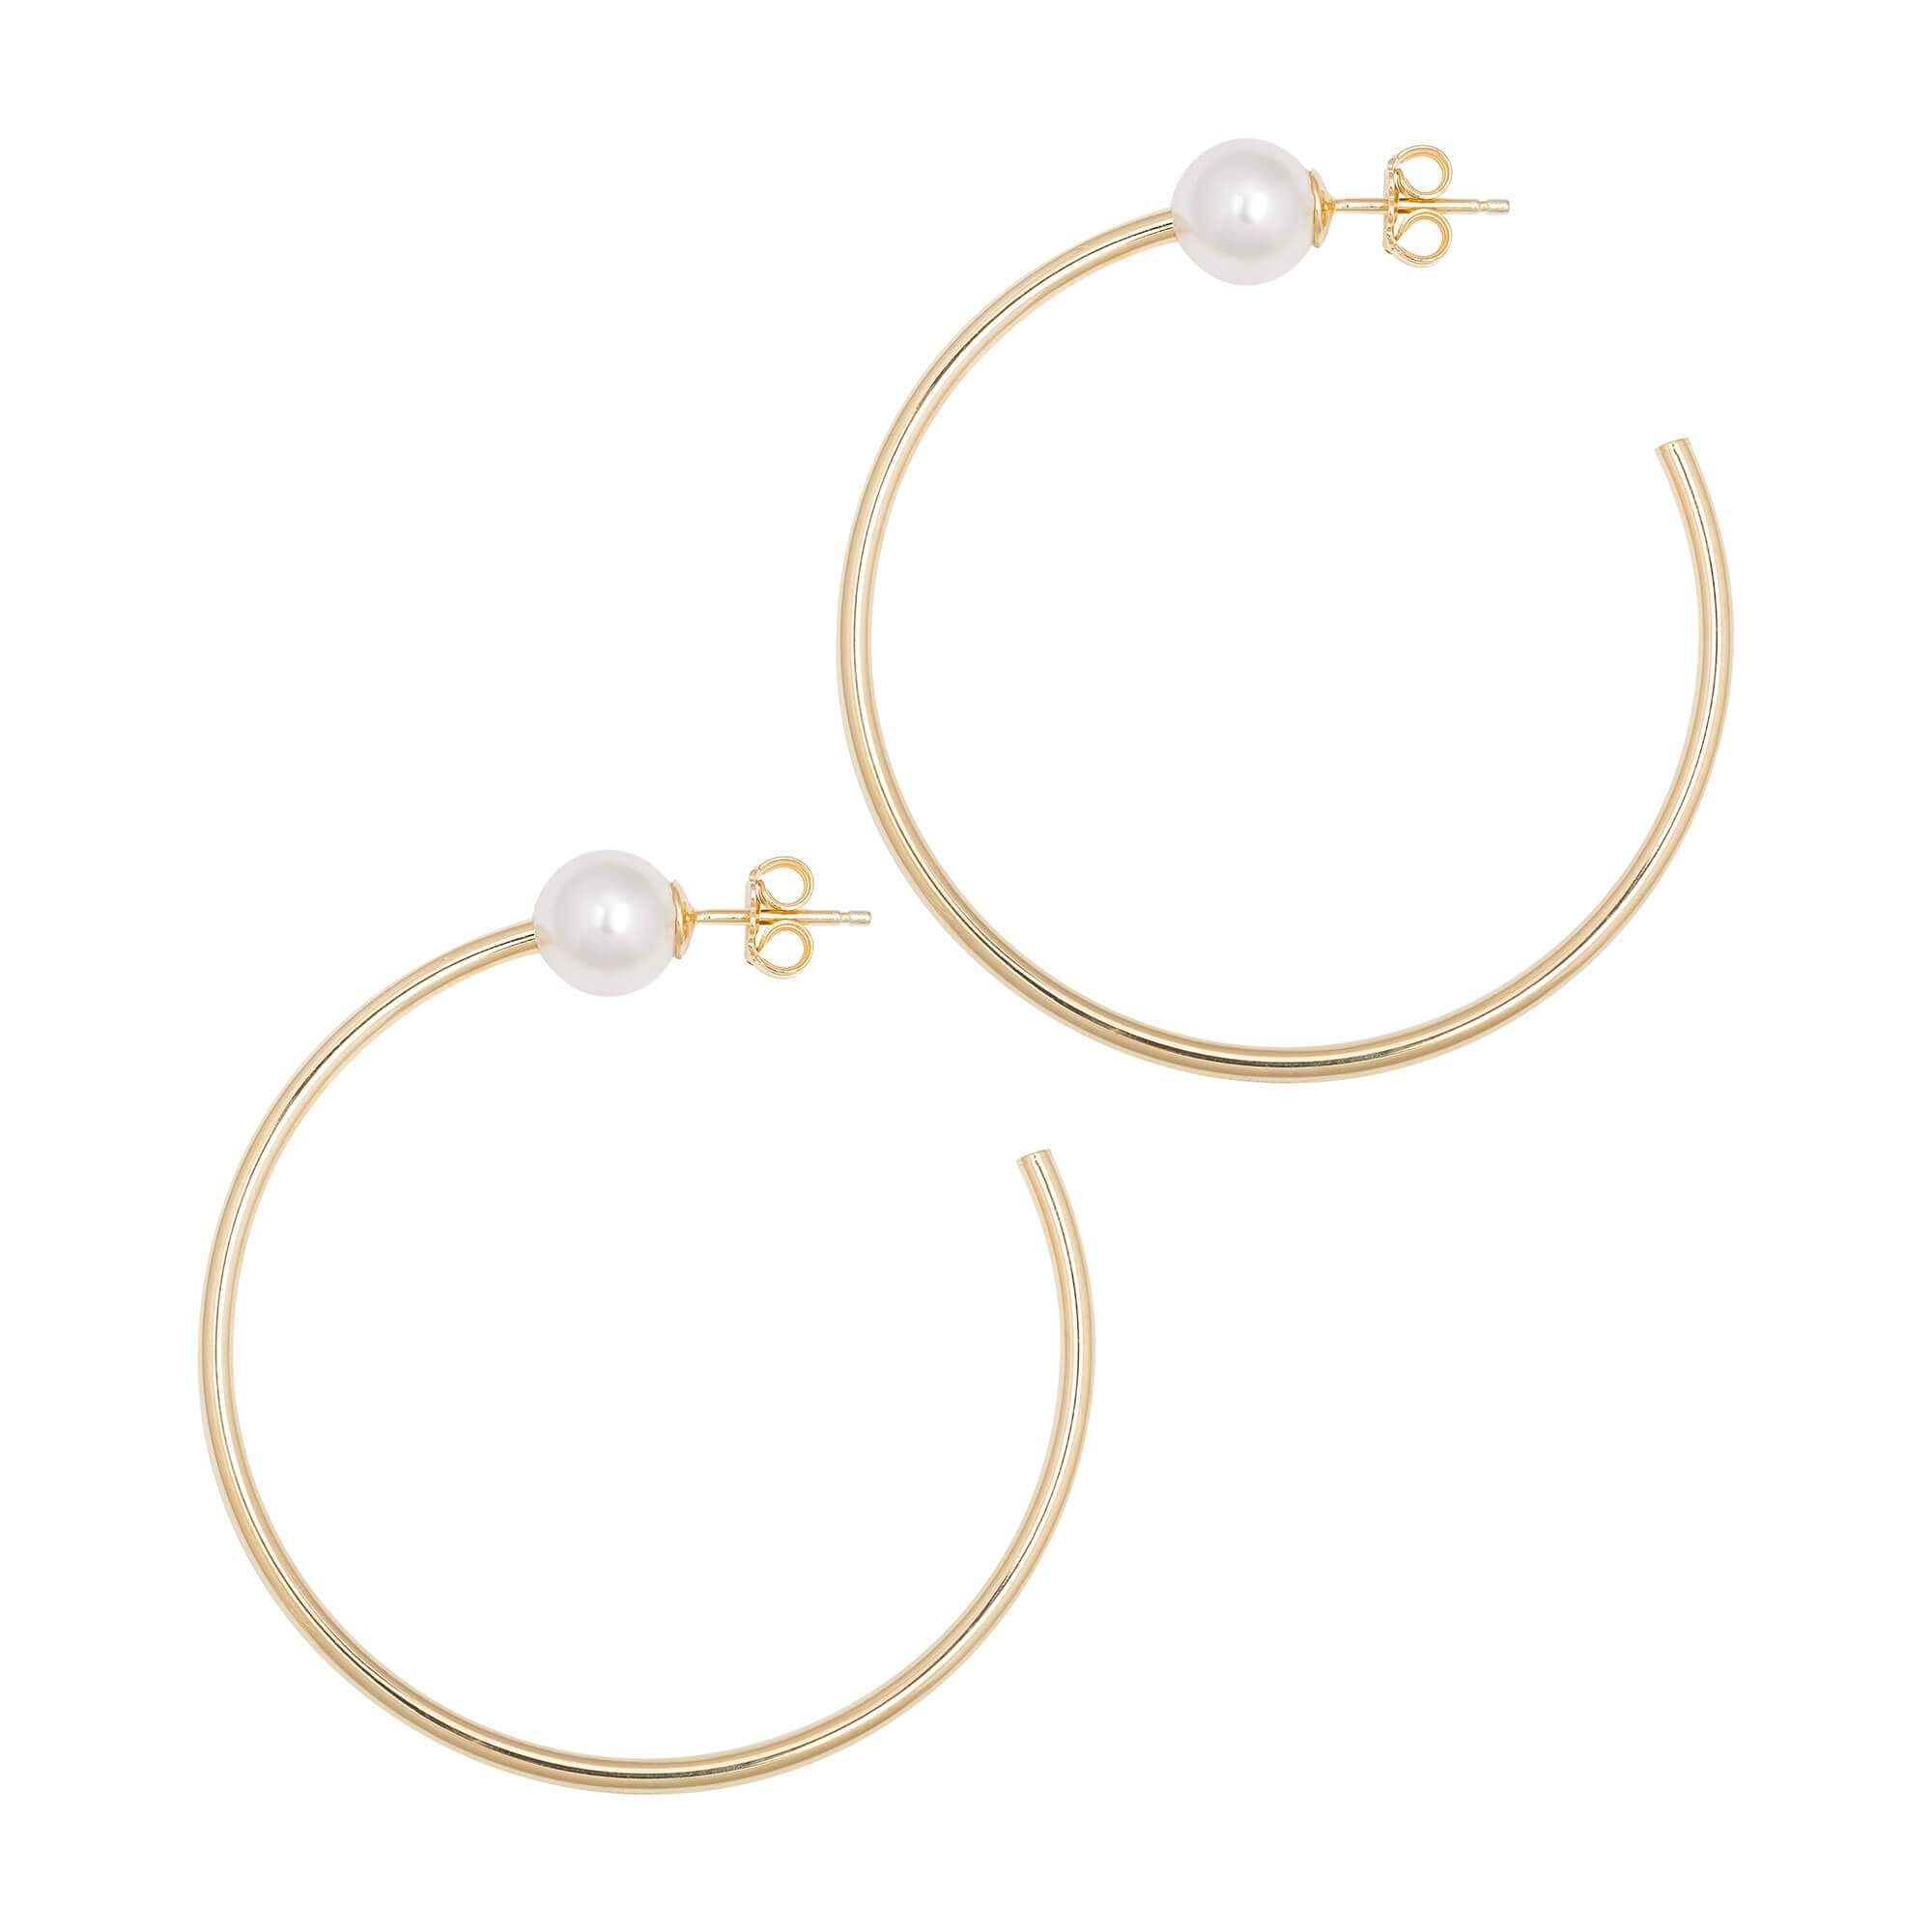 La PERLA - The Hoop Station 925 Sterling Silver Hoop Earrings Gold Huggies